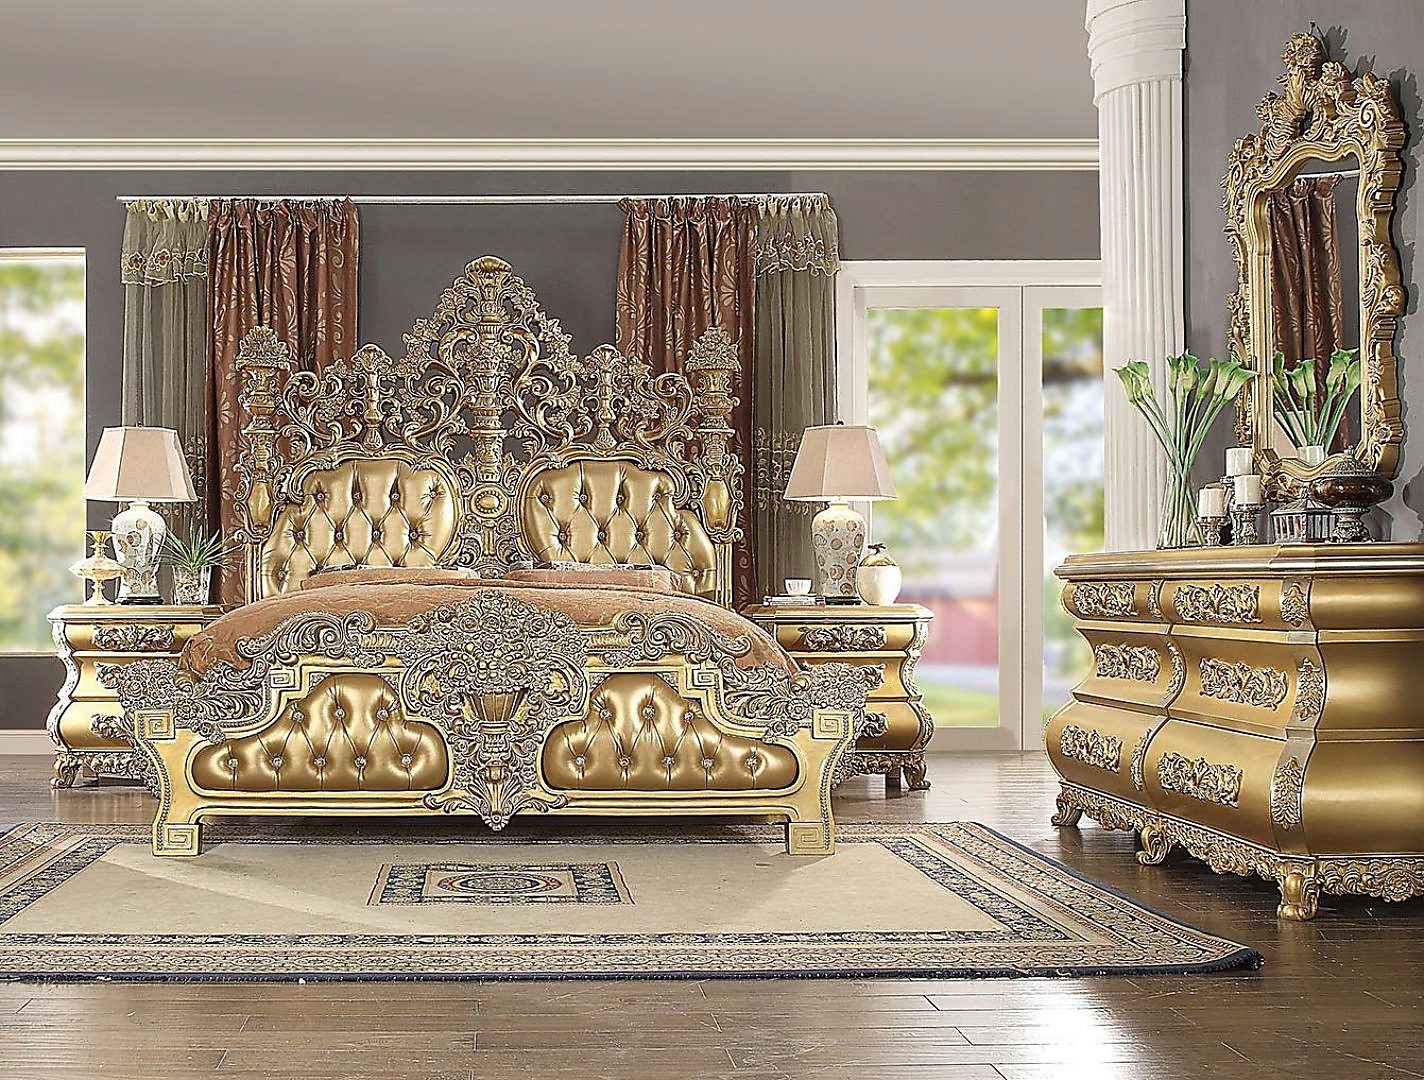 Traditional HD-8016 Gilded California King Bedroom Set 5 Pcs by Homey Design